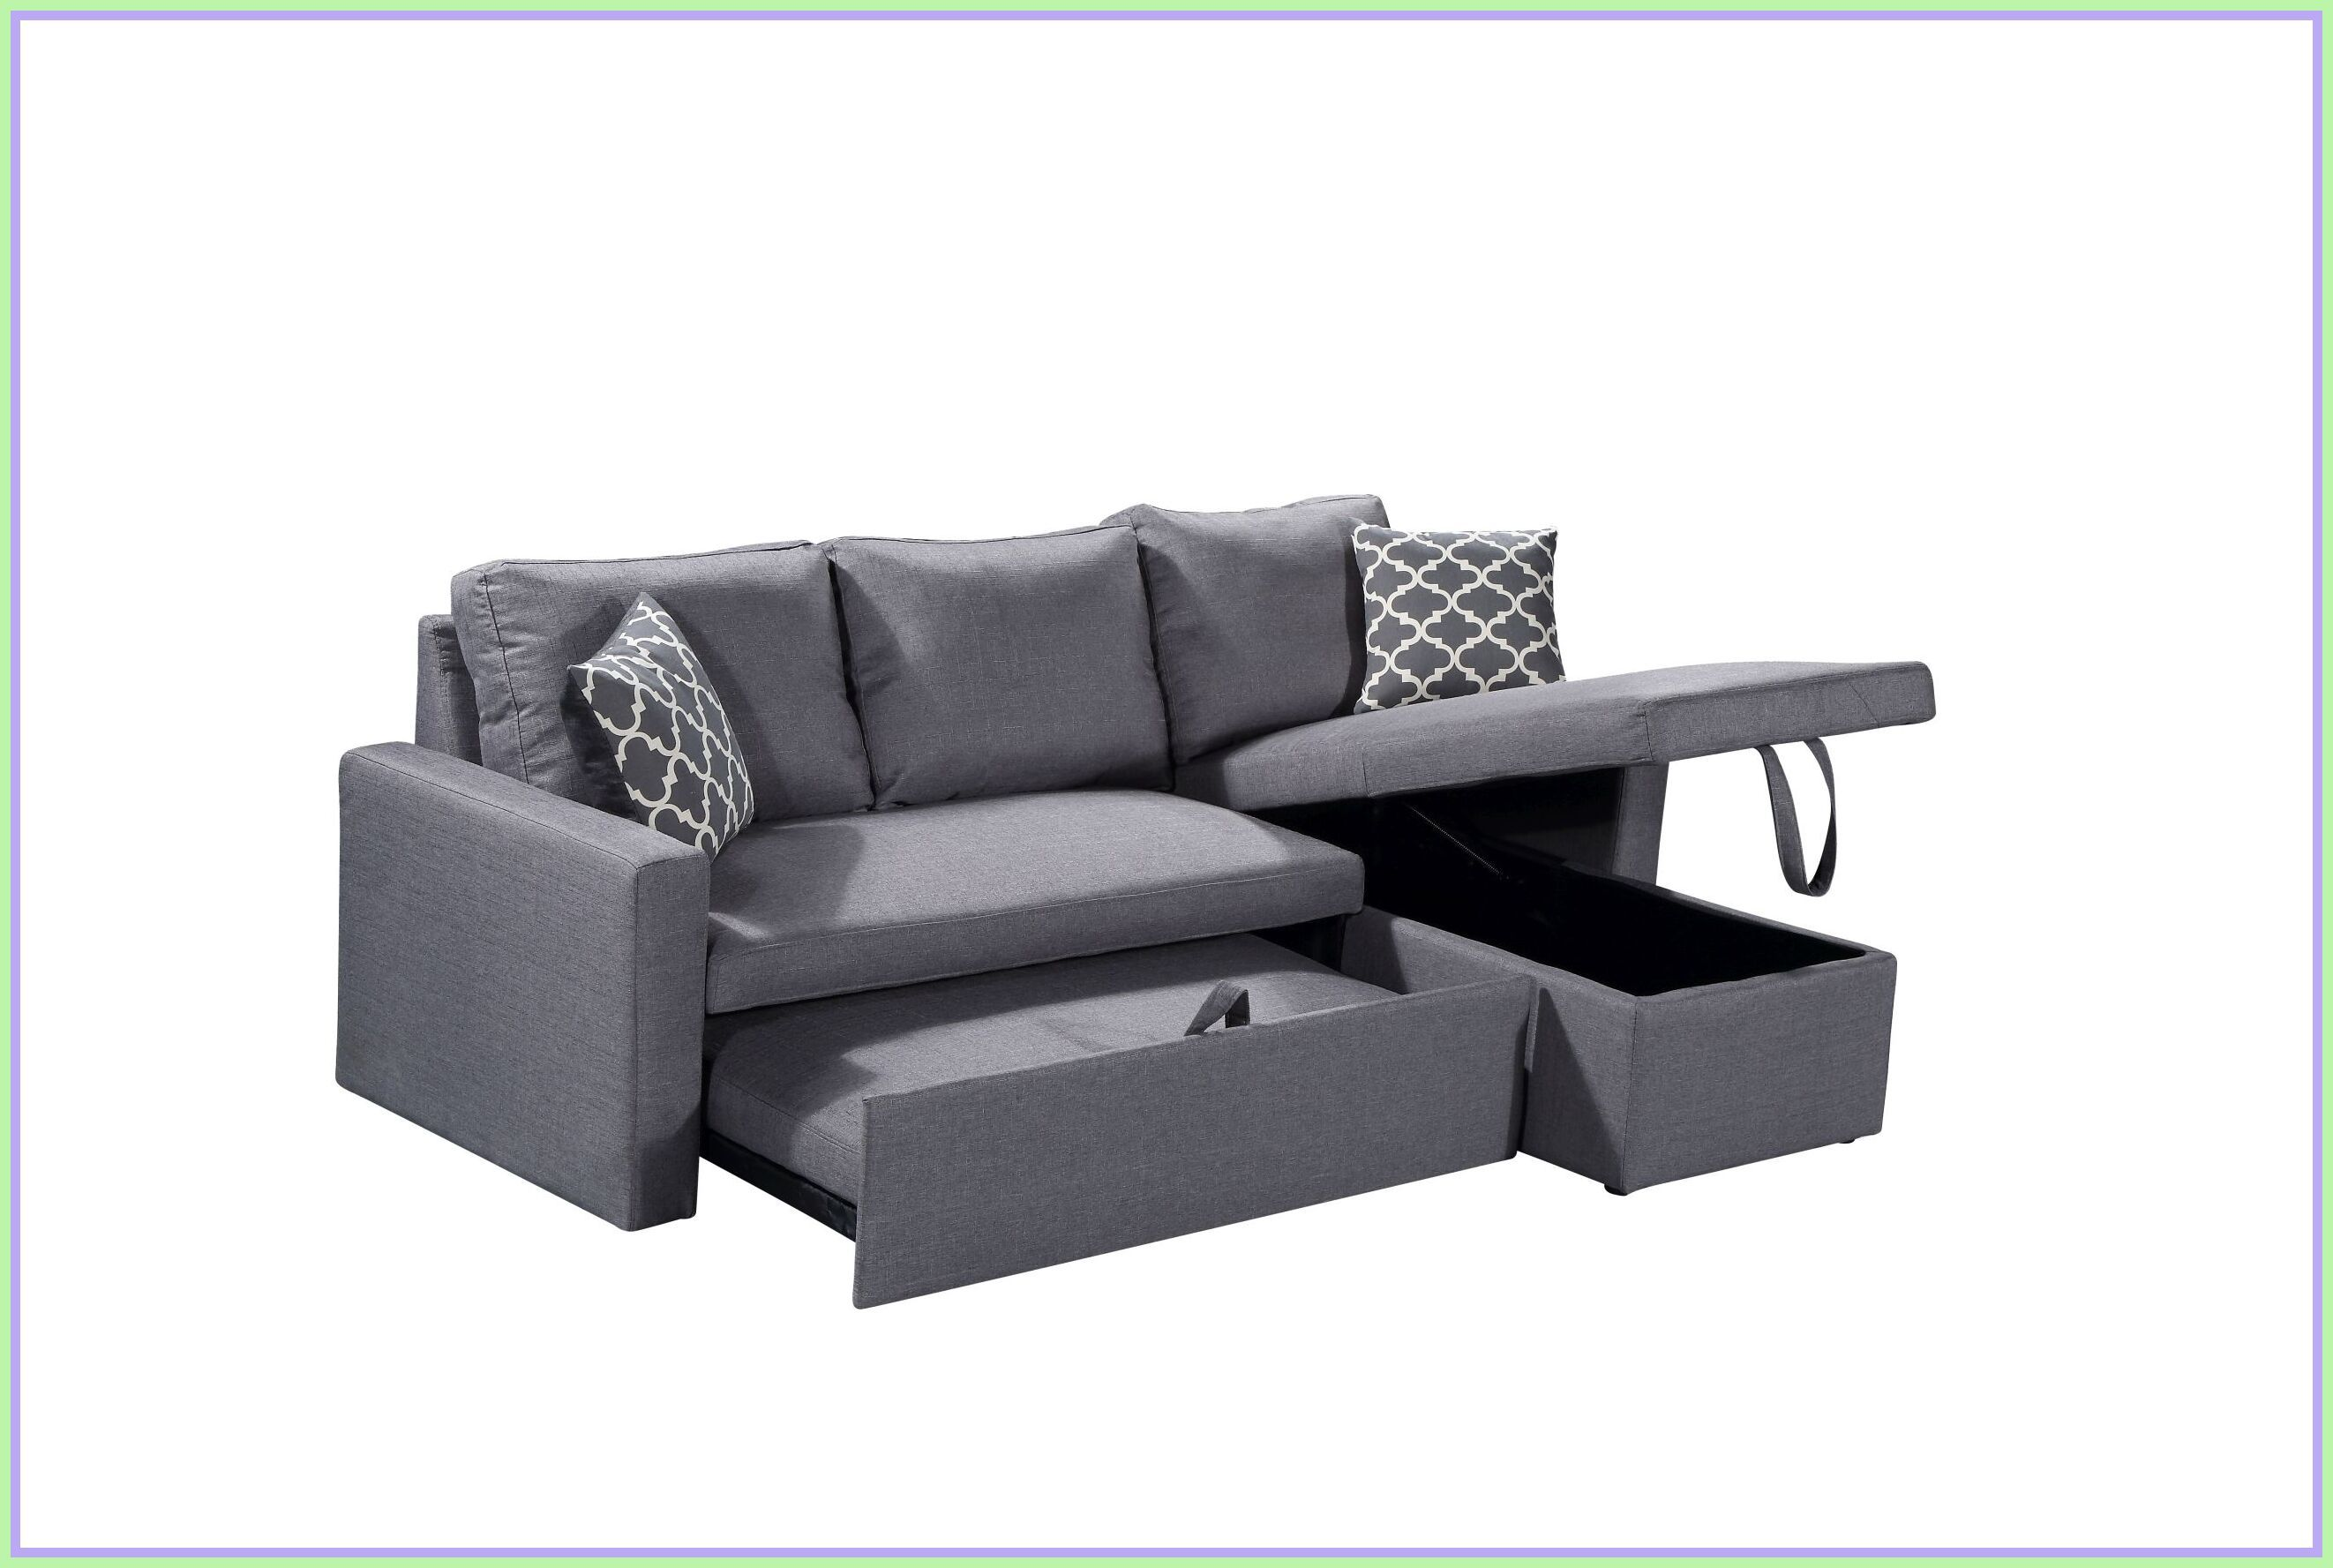 Mhl 002 Belarus L Shaped Sofa Furniture Manila Philippines L Shaped Sofa L Shaped Leather Sofa Sofa Furniture